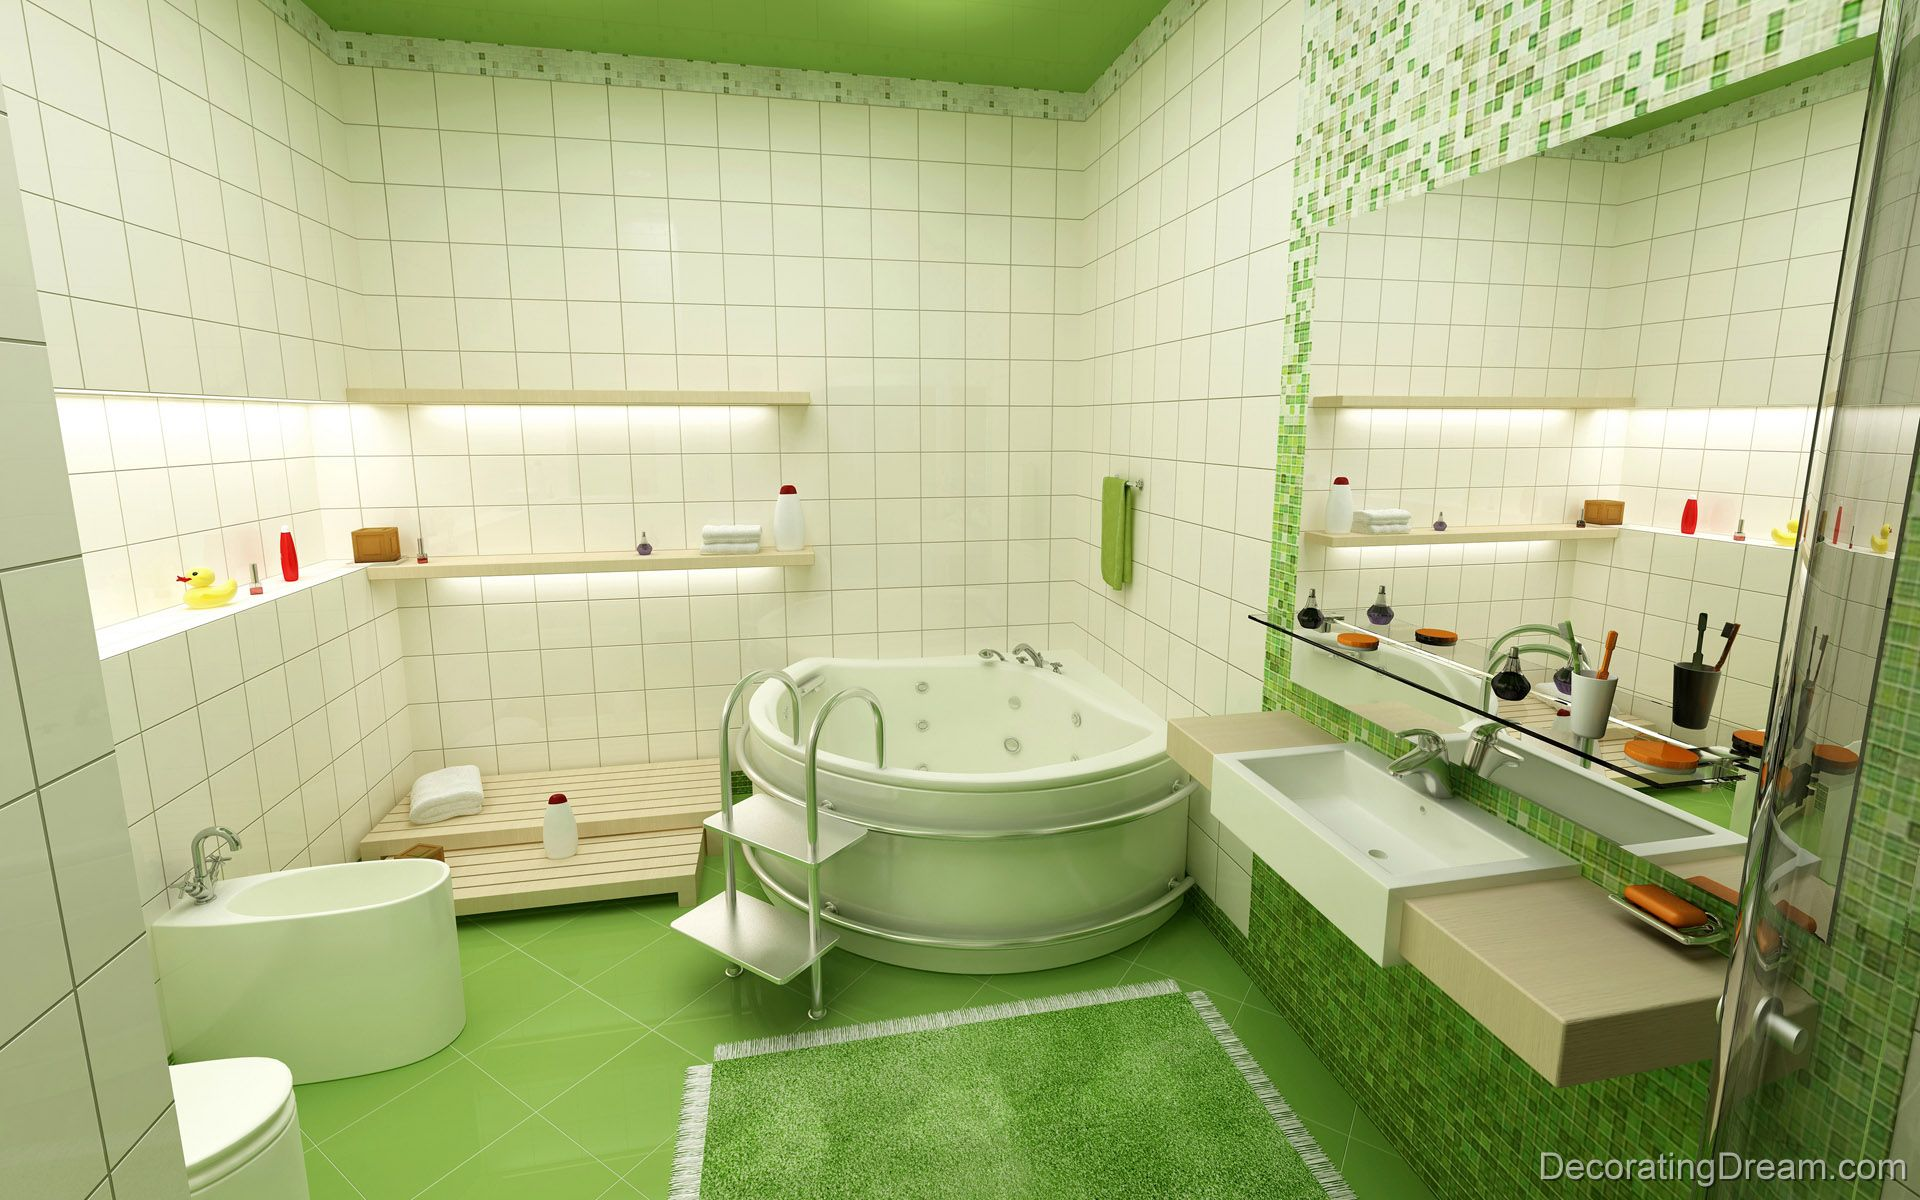 modern-and-spacious-kids-bathroom-design.jpg